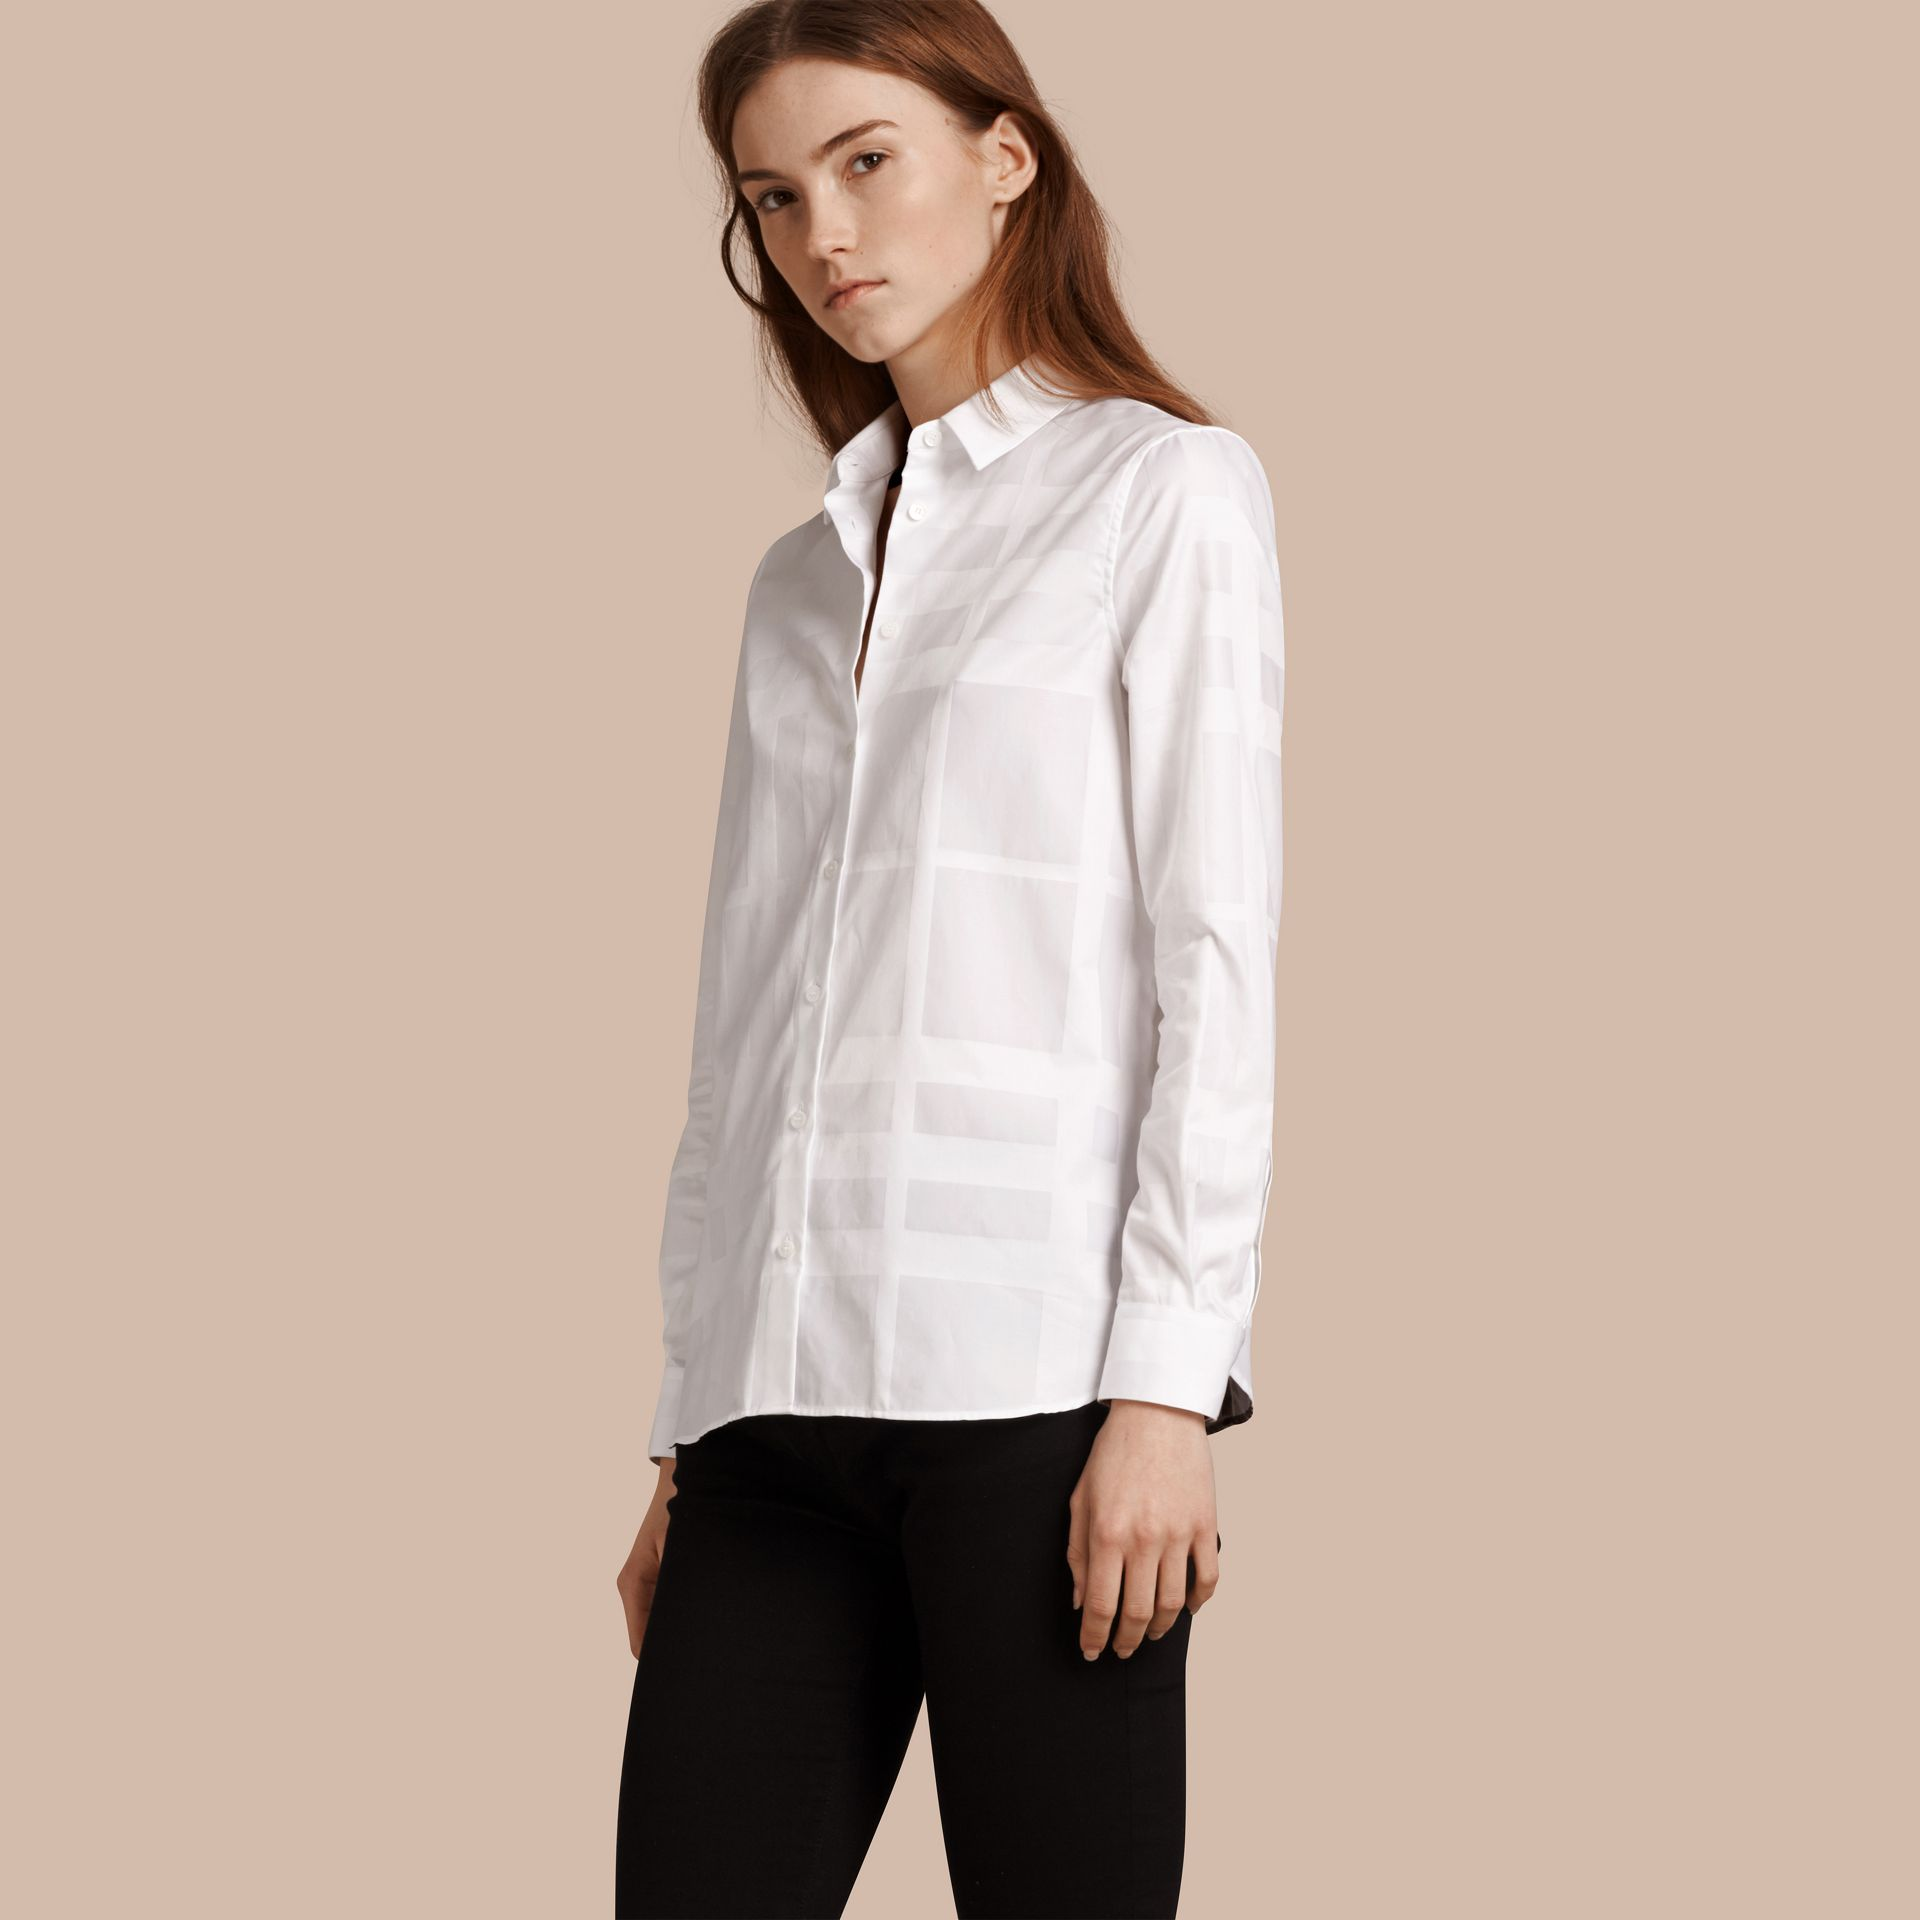 White Check Jacquard Cotton Shirt White - gallery image 1